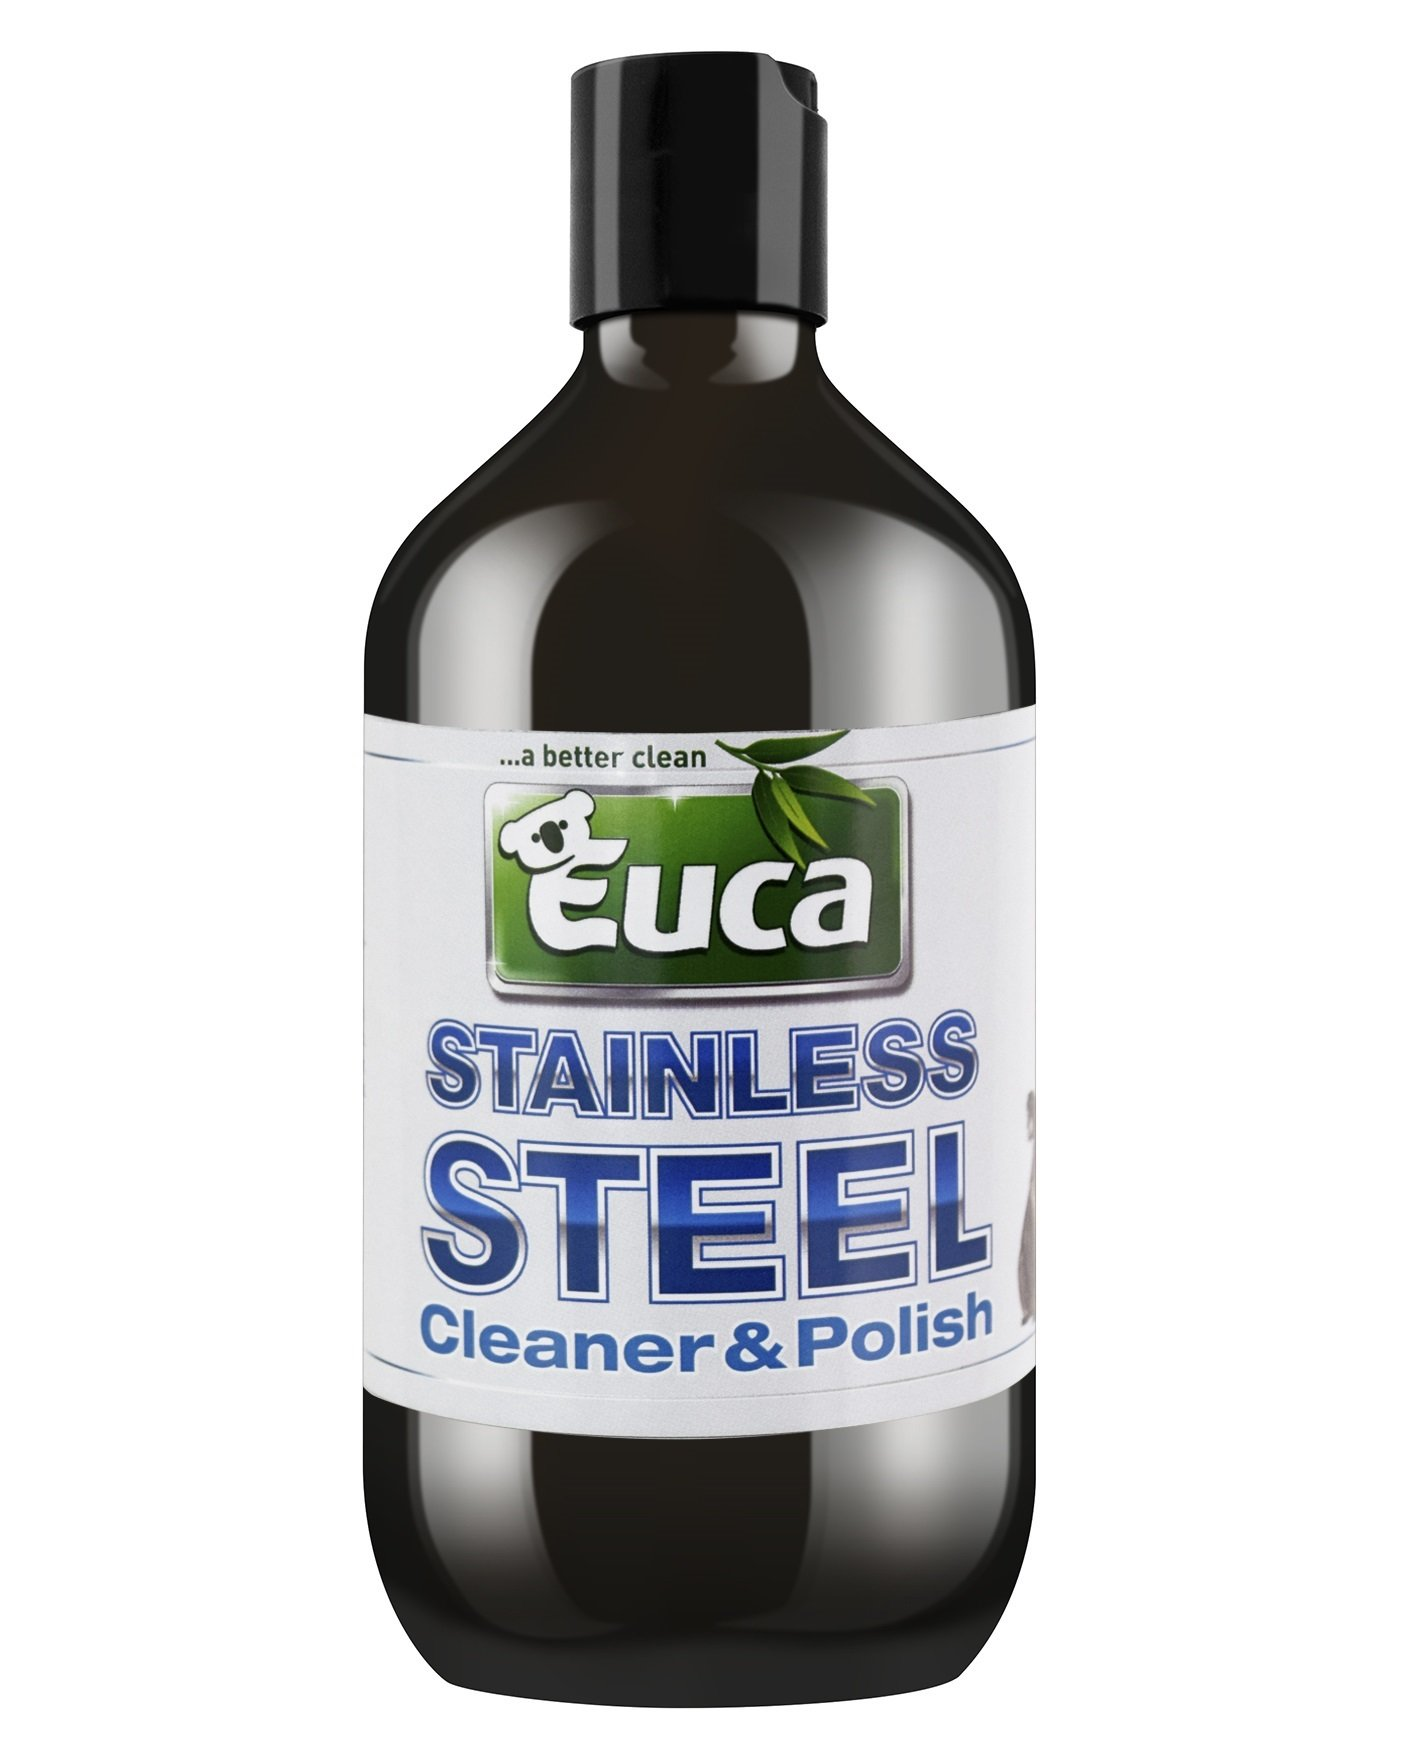 Euca Stainless Steel and all Metals cleaner & Polish - 500ml - Clean & Polish all Stainless Steel Alloy chrome brass copper bronze & more 558C